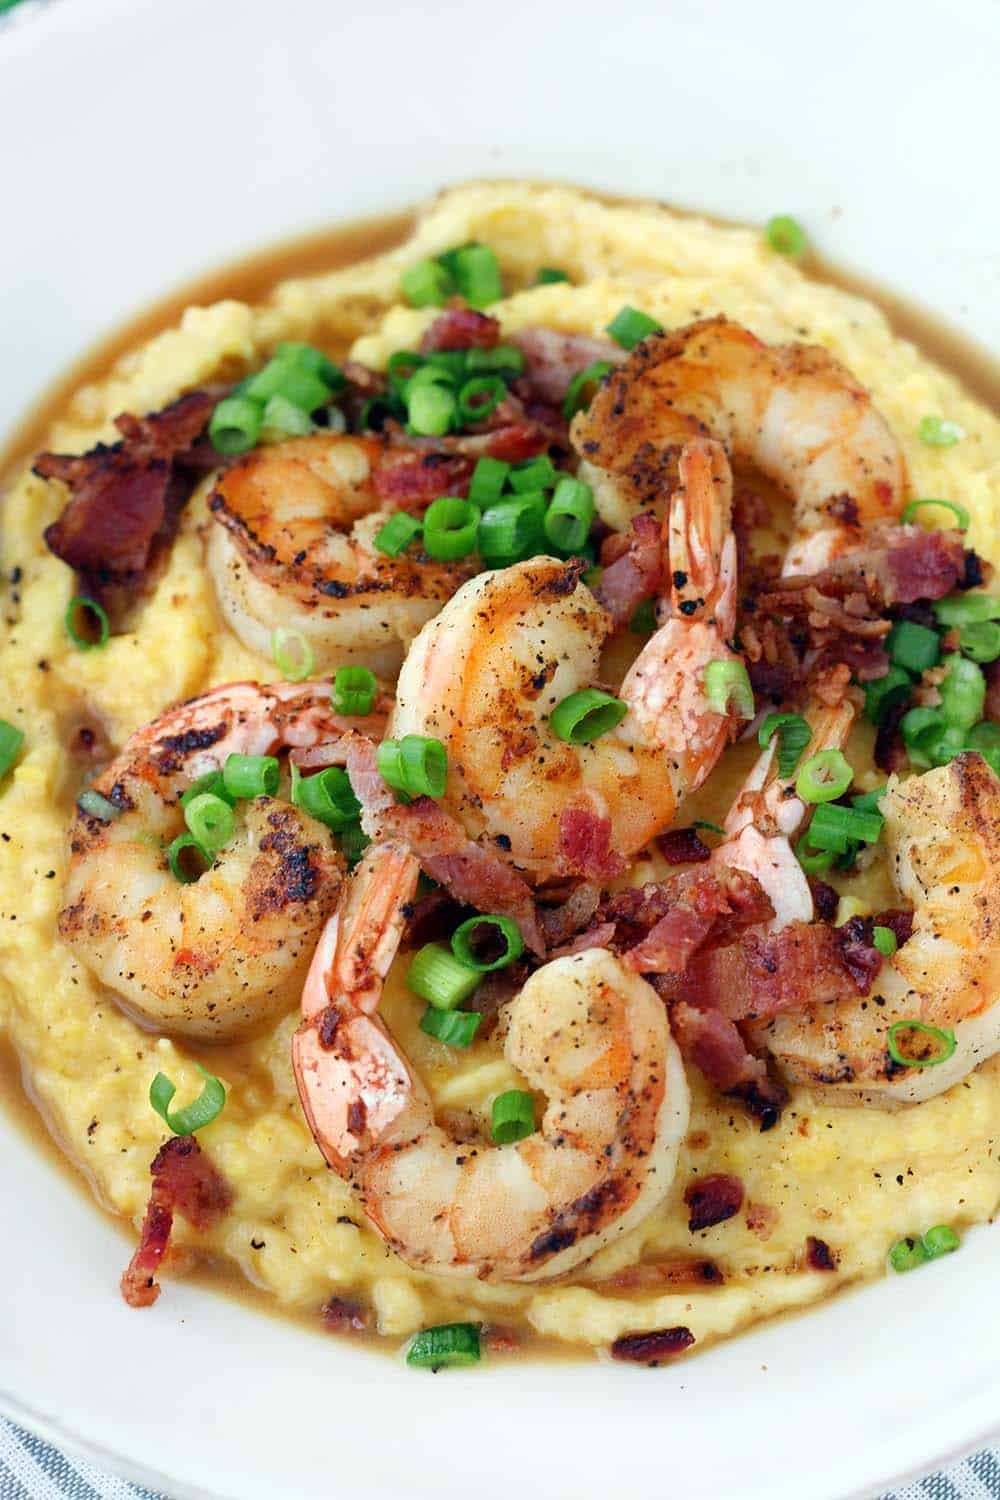 This classic Shrimp and Grits recipe is easy to make and is such delicious Southern comfort food! The cheesy grits are cheap and gluten free, and make an excellent base for the flavorful shrimp and crumbled bacon.